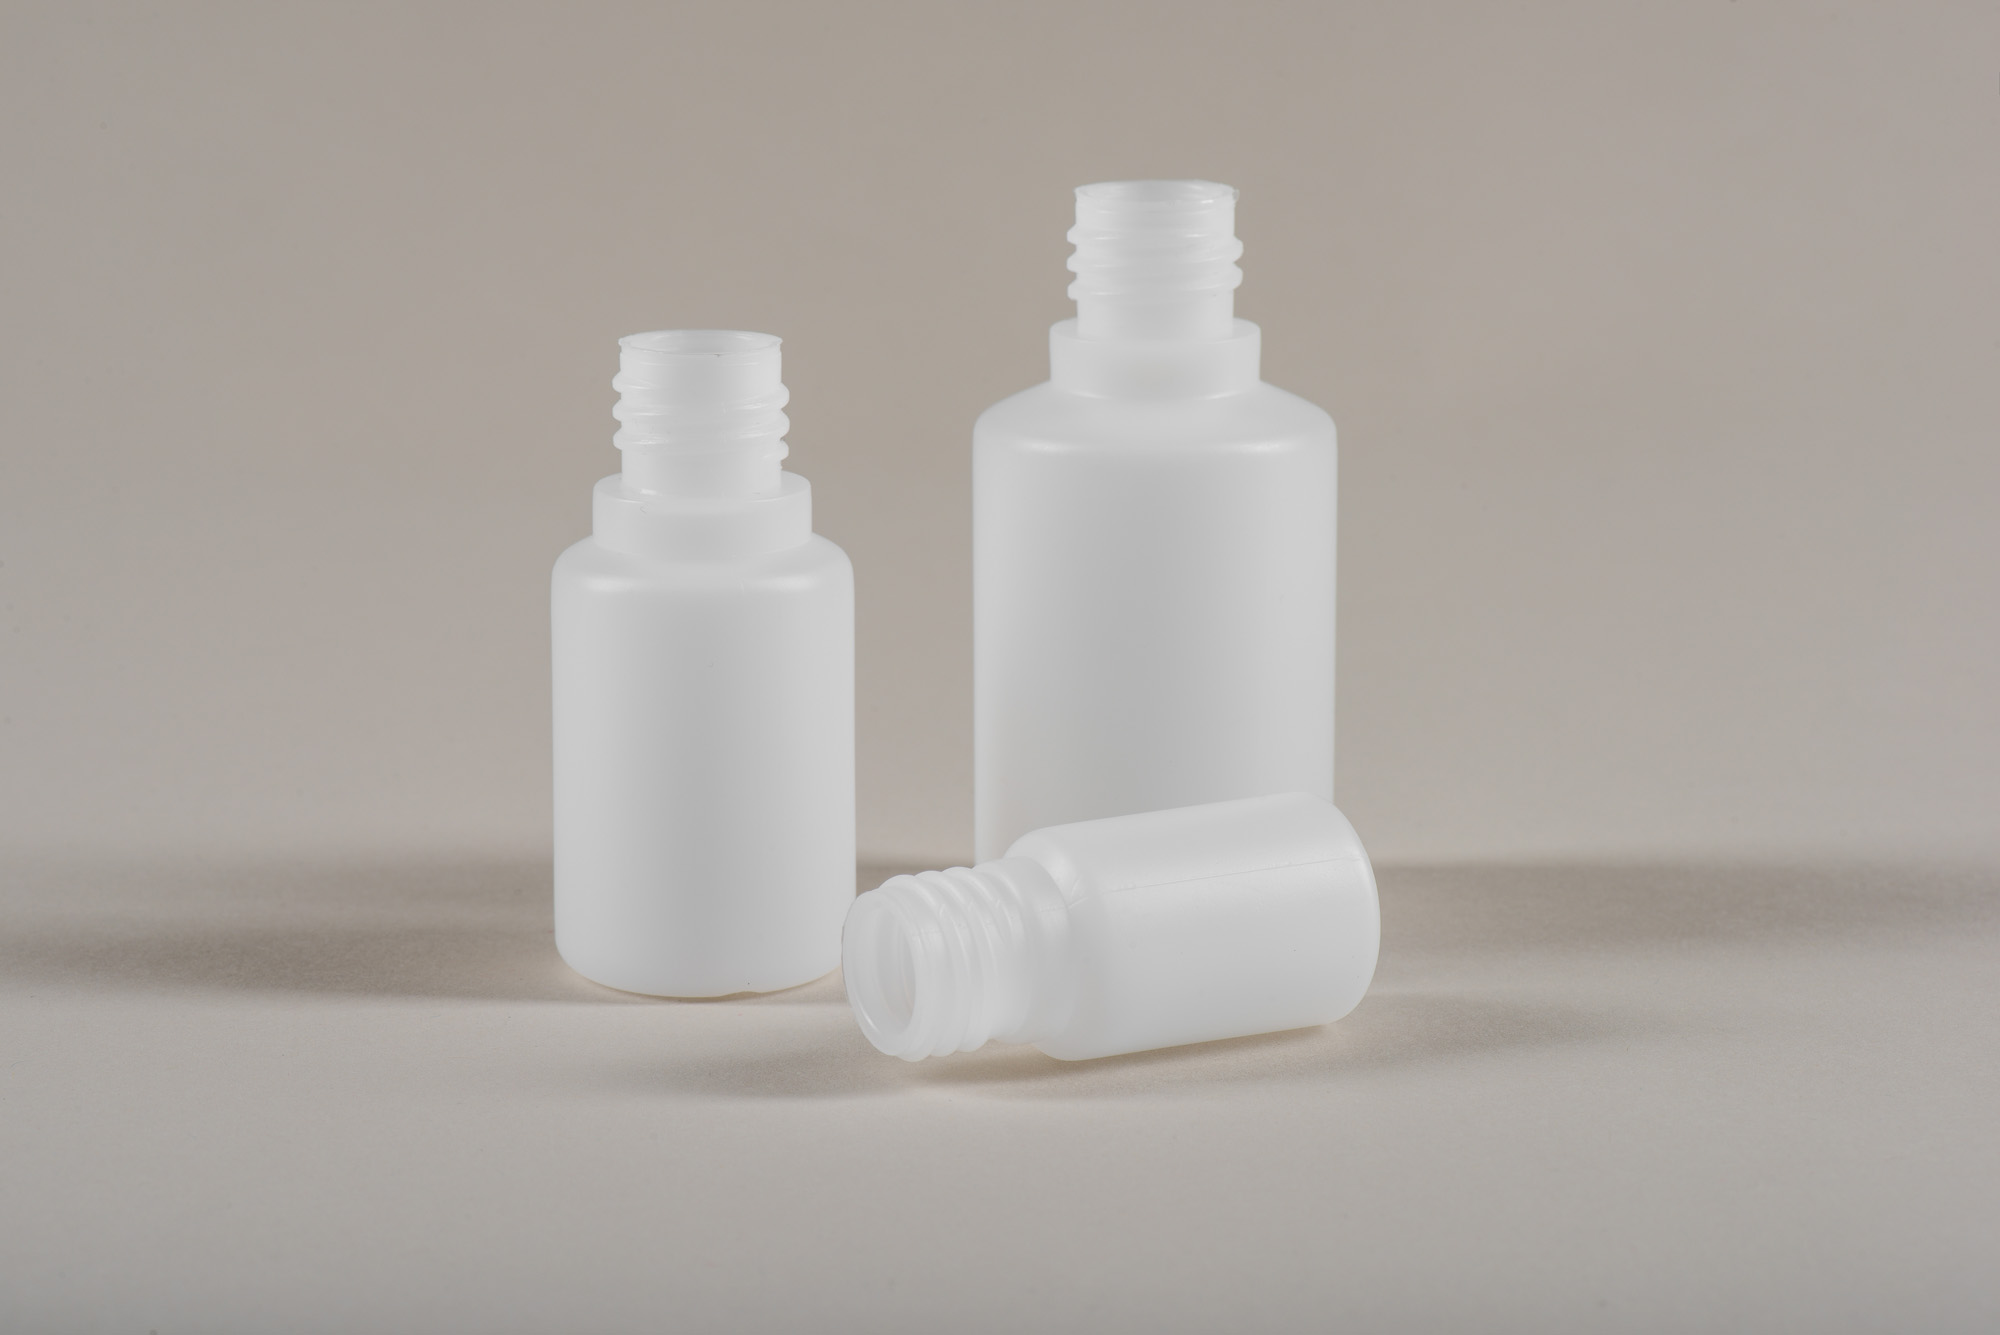 Cyanoacrylates Packaging